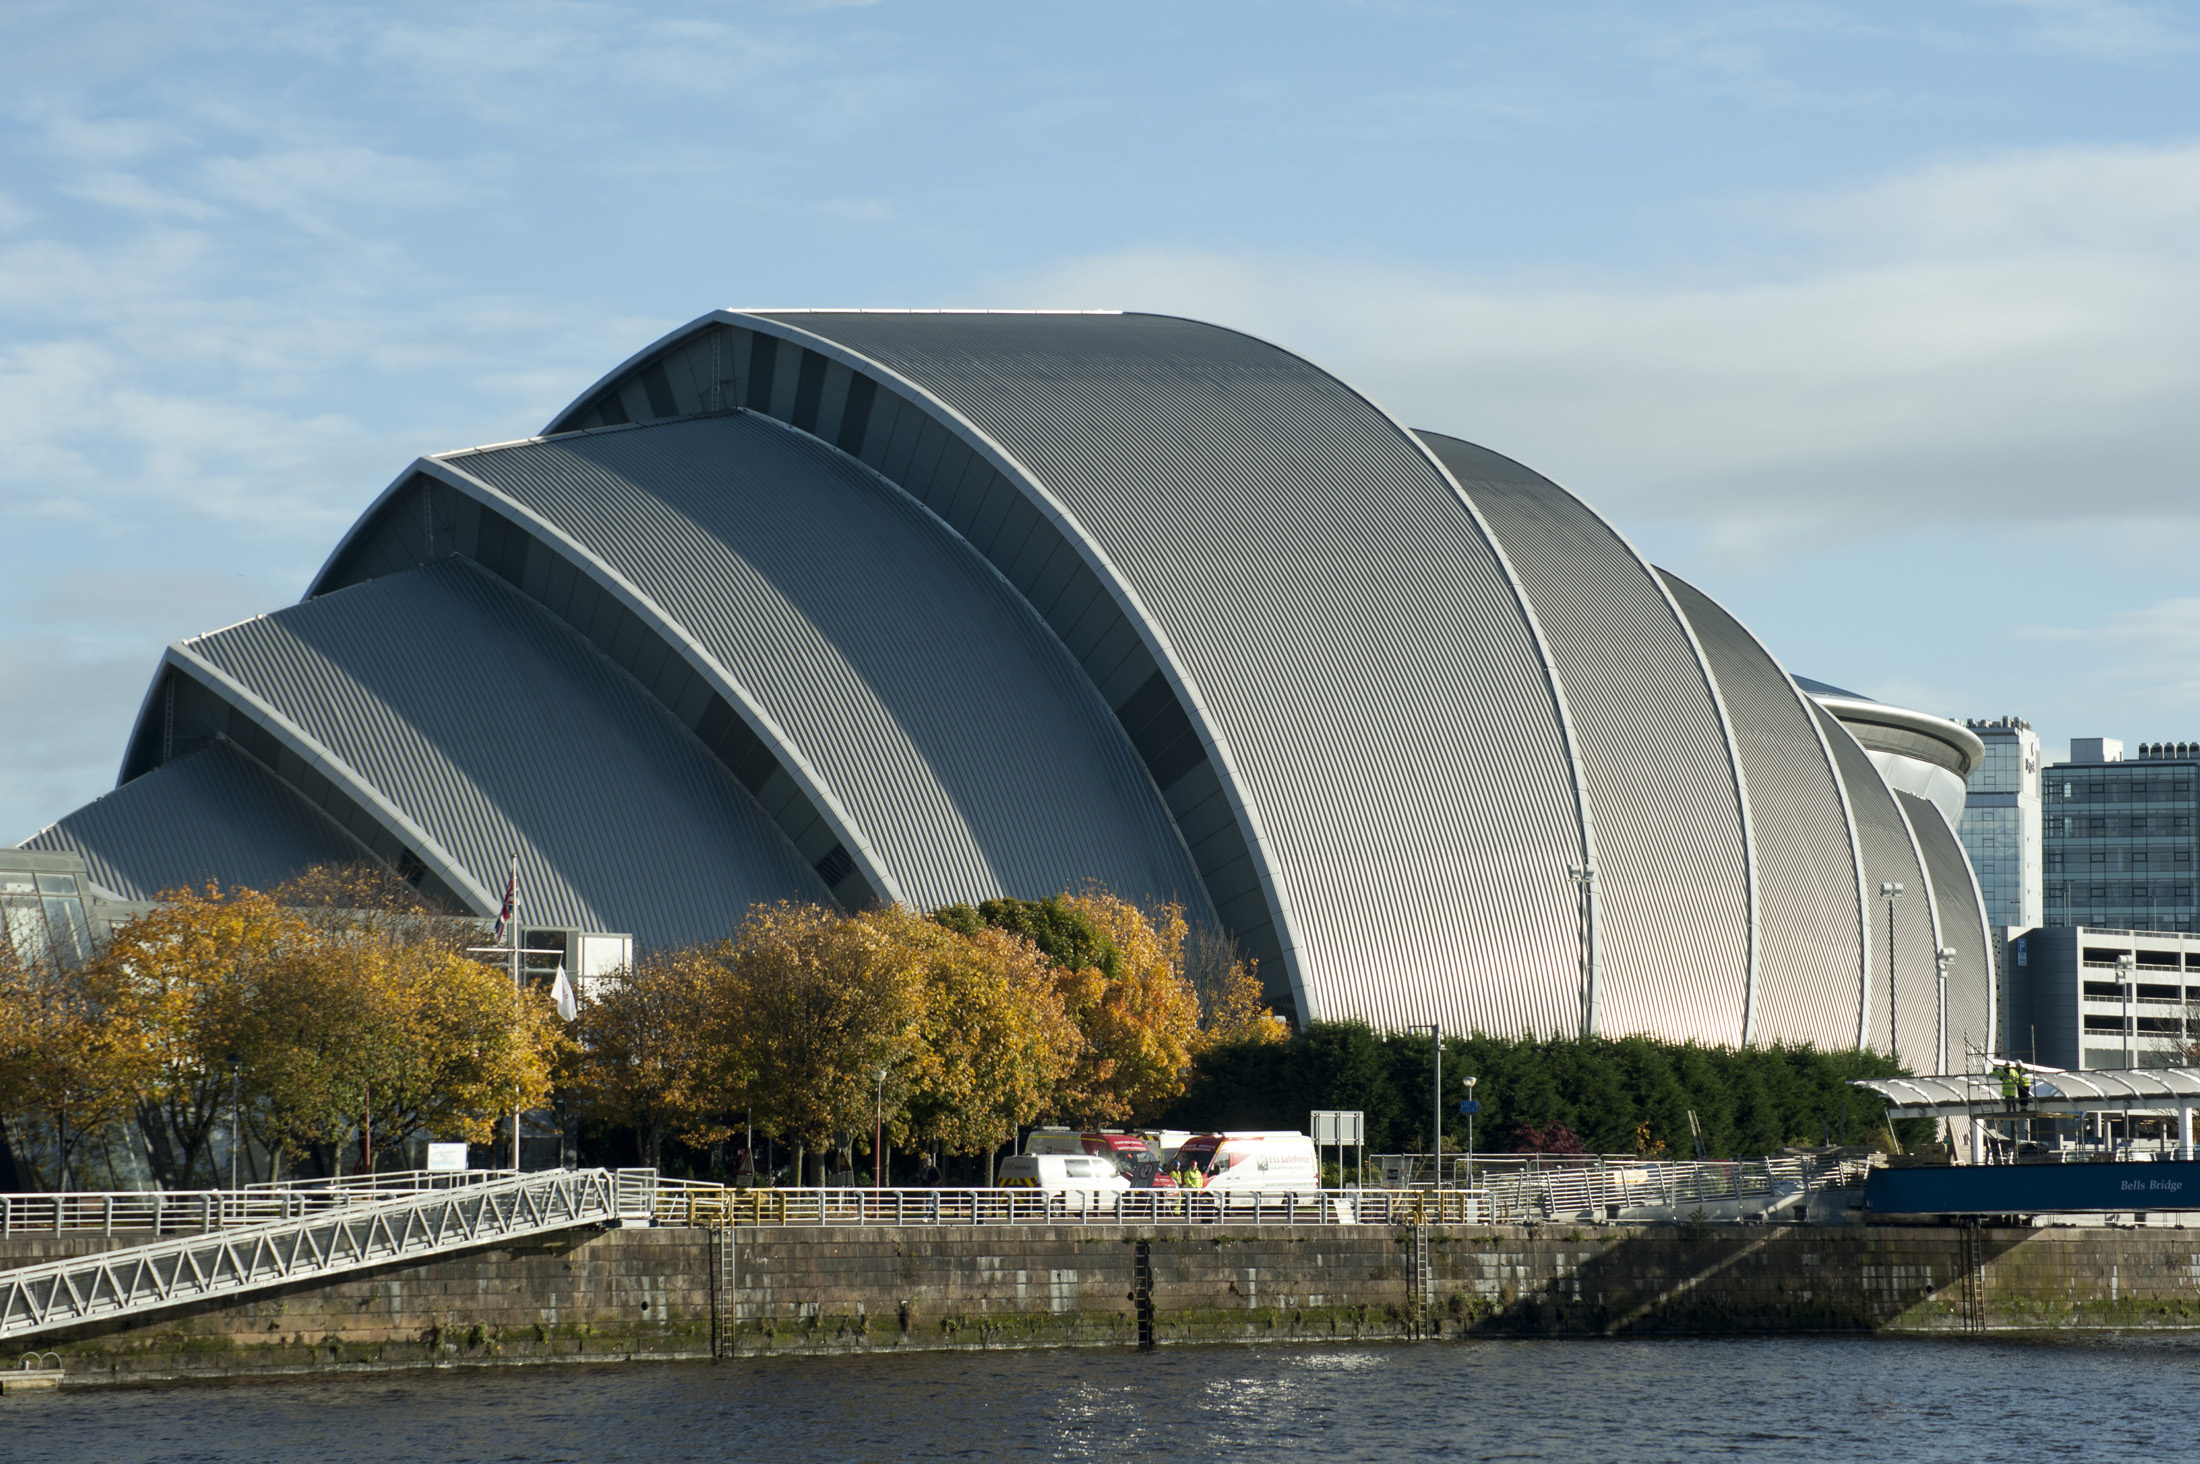 The Scottish Exhibition and Conference Centre, from Glasgow, UK, international modern location for public events, concerts and conferences